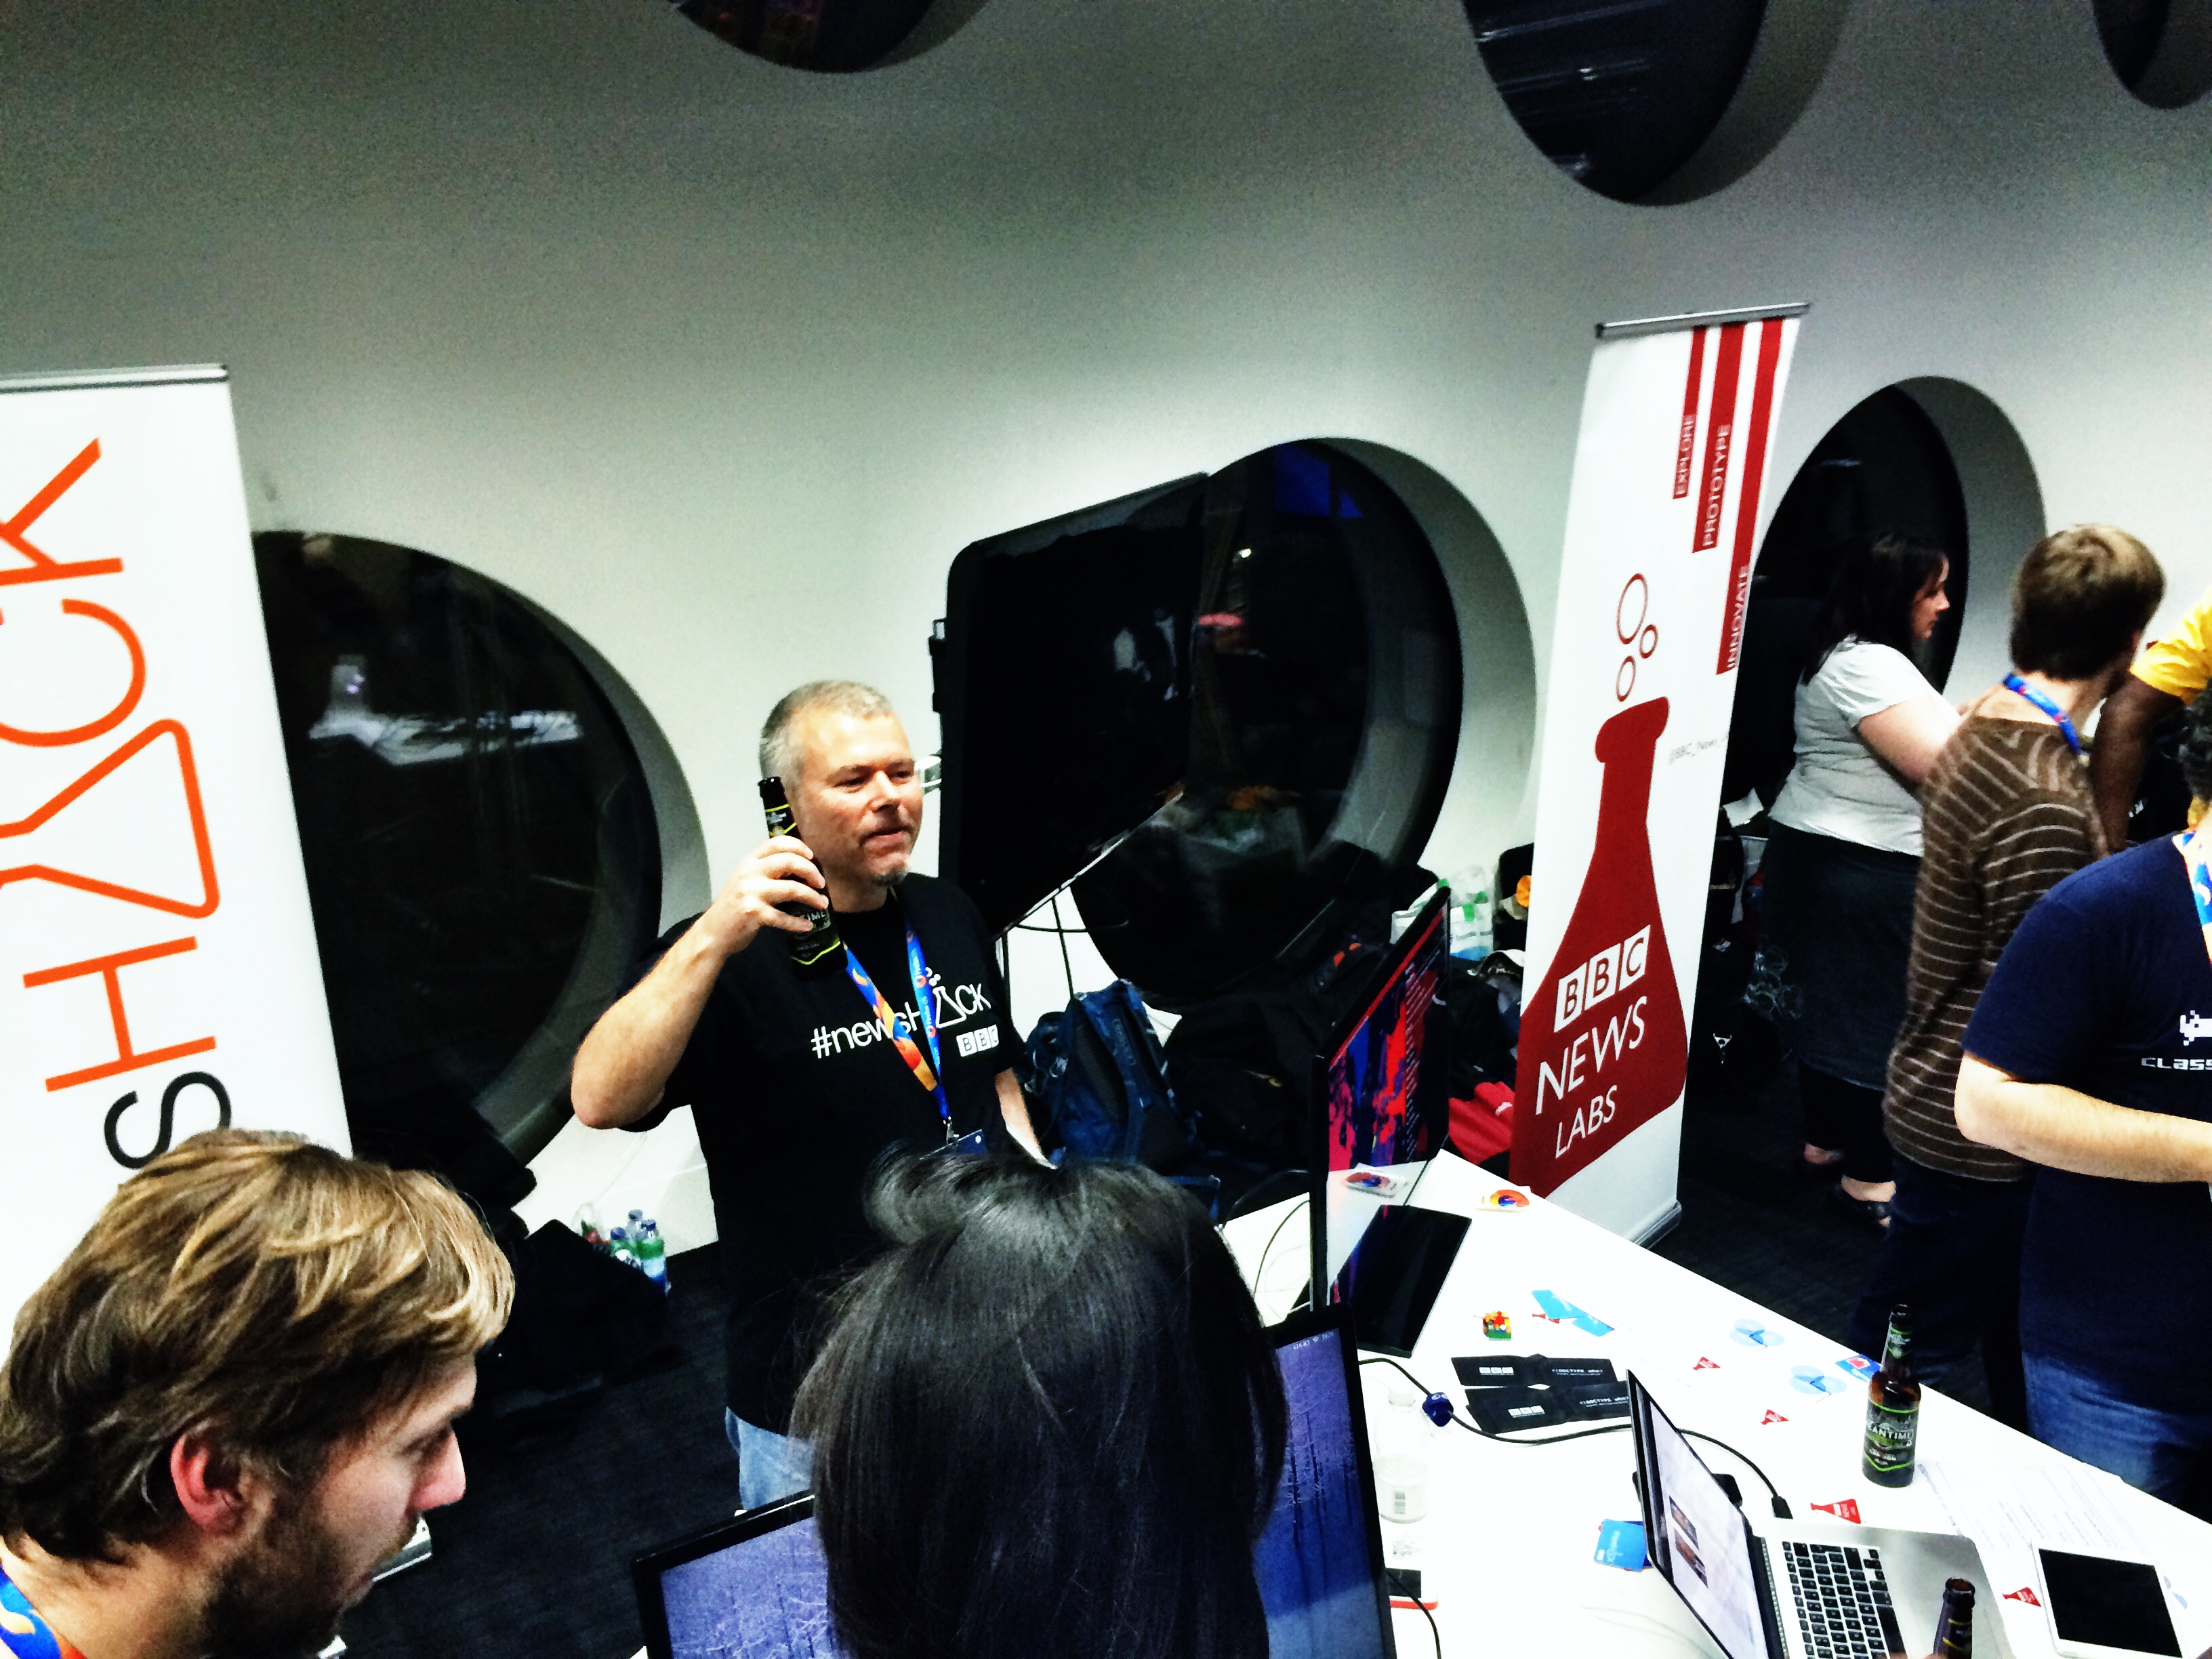 Graham Lenton at Mozfest 2014 Science Fair with BBC News Labs